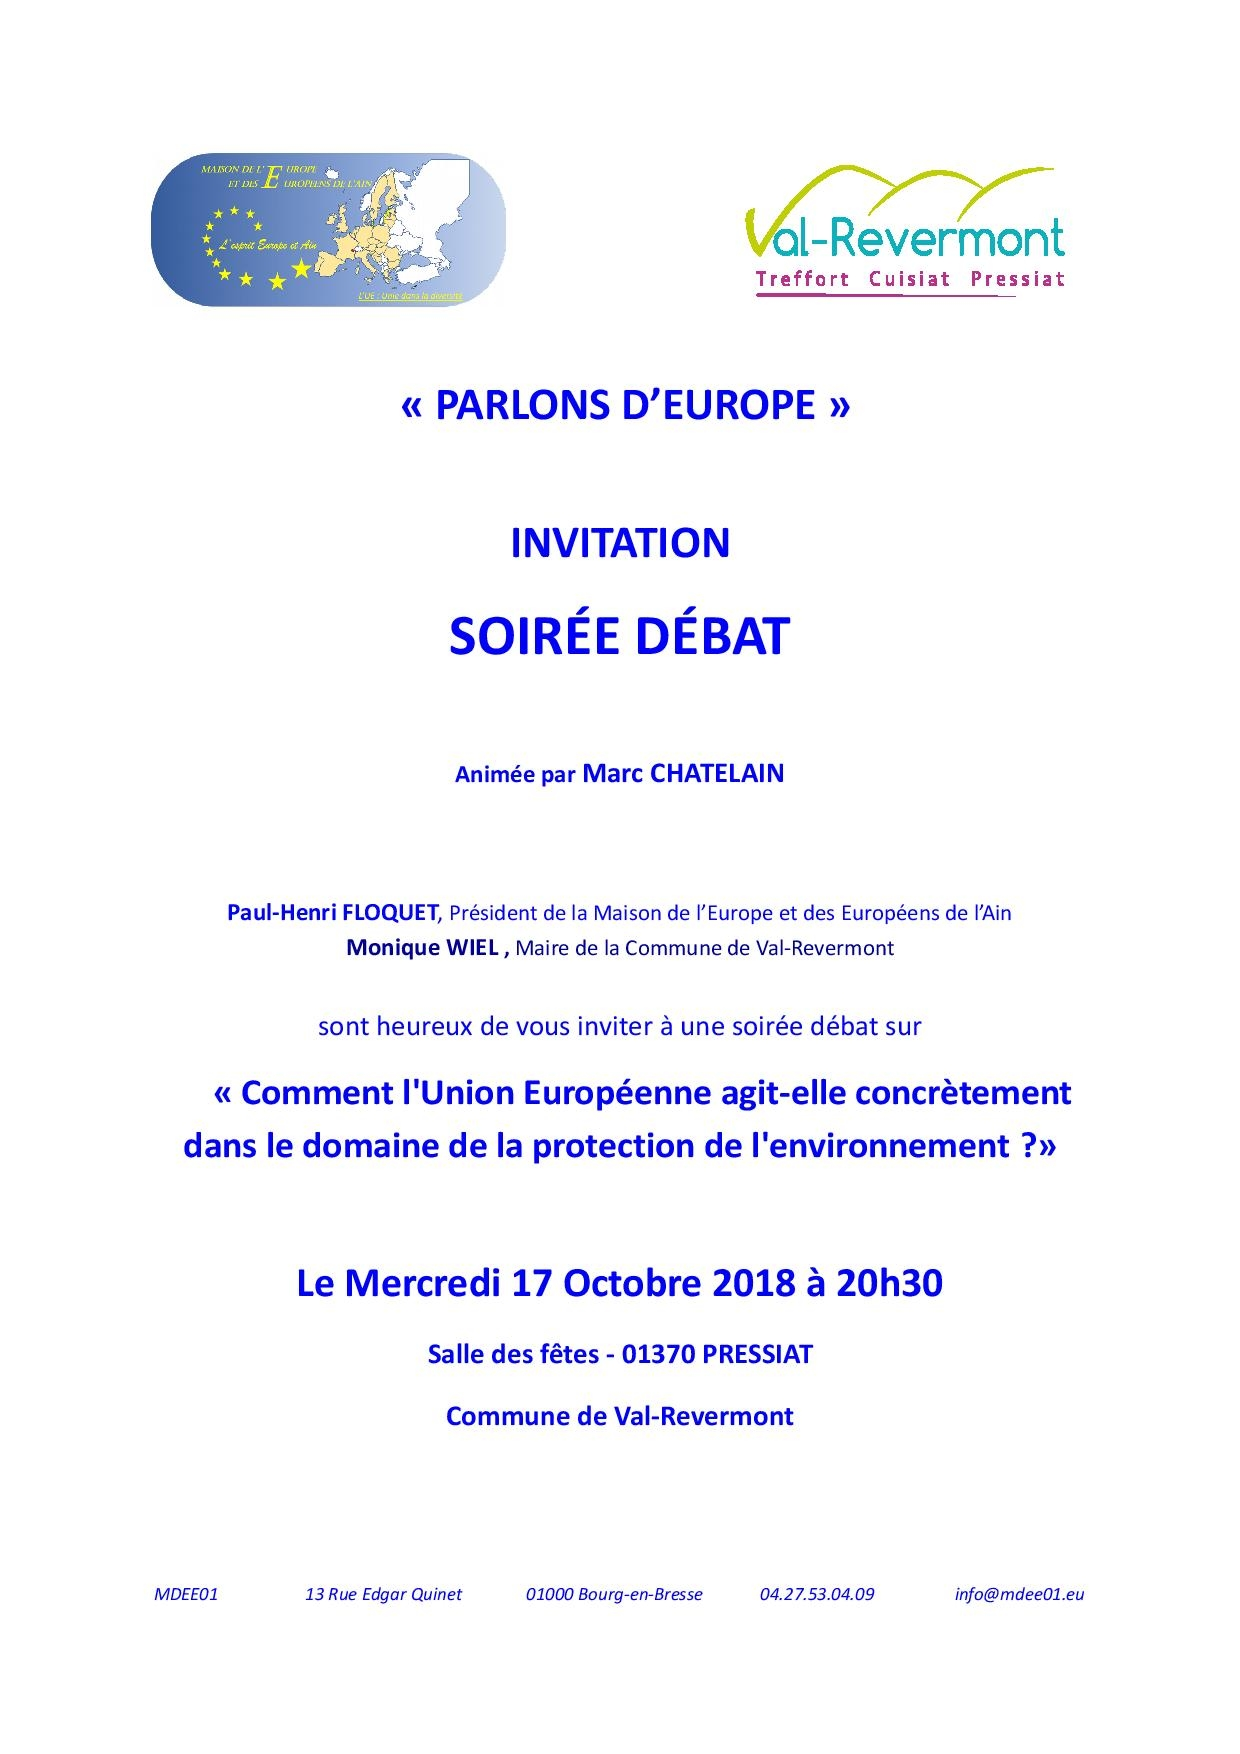 CONF PRESSIAT 18 Octobre-page-001